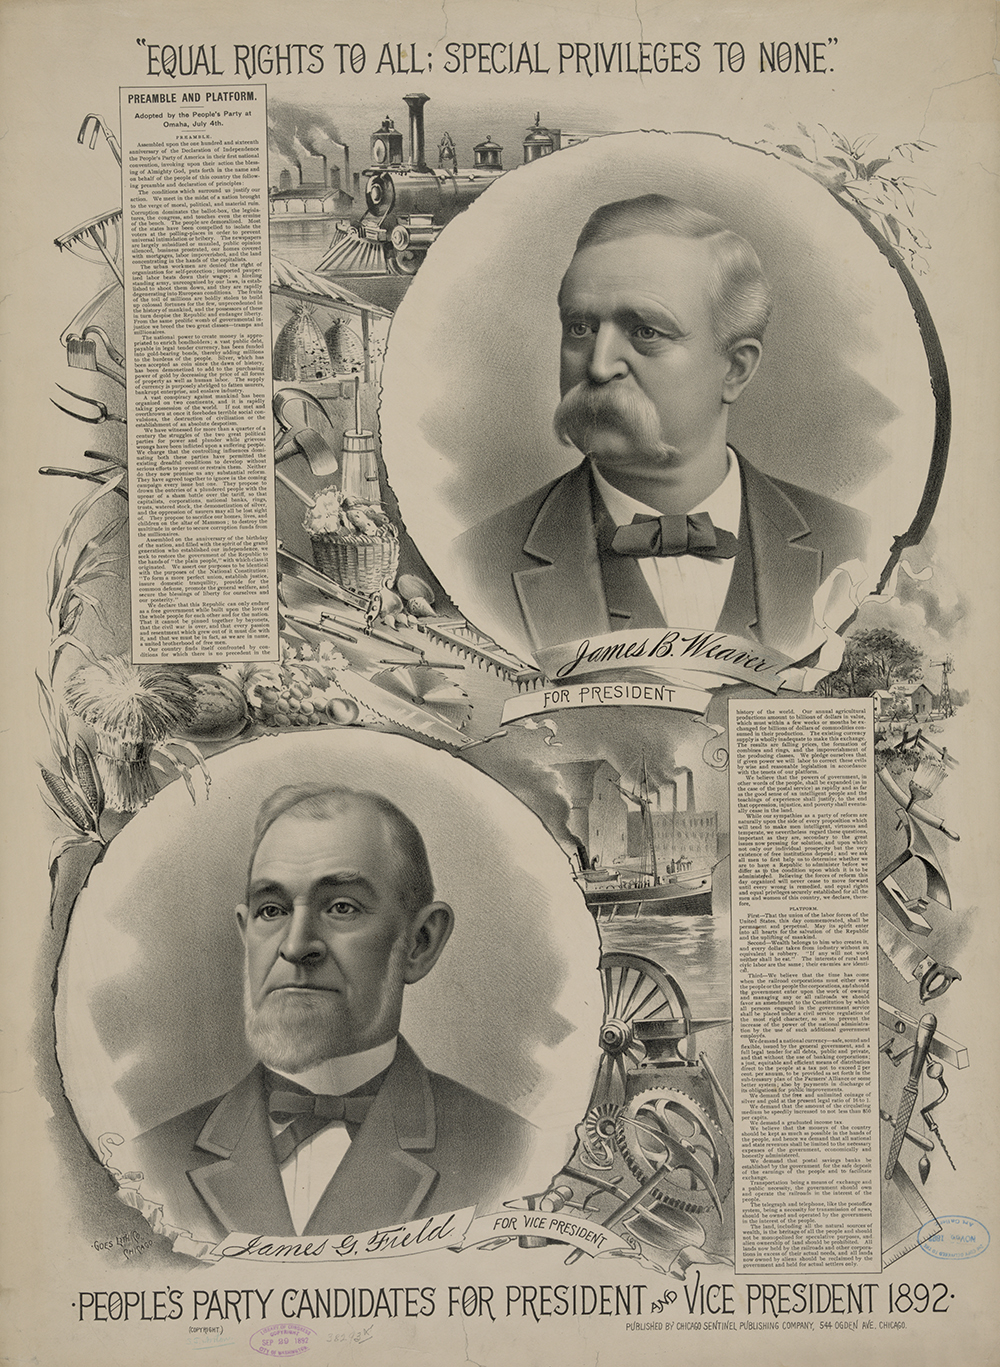 Poster for the People's Party candidates for president and vice president in 1892.